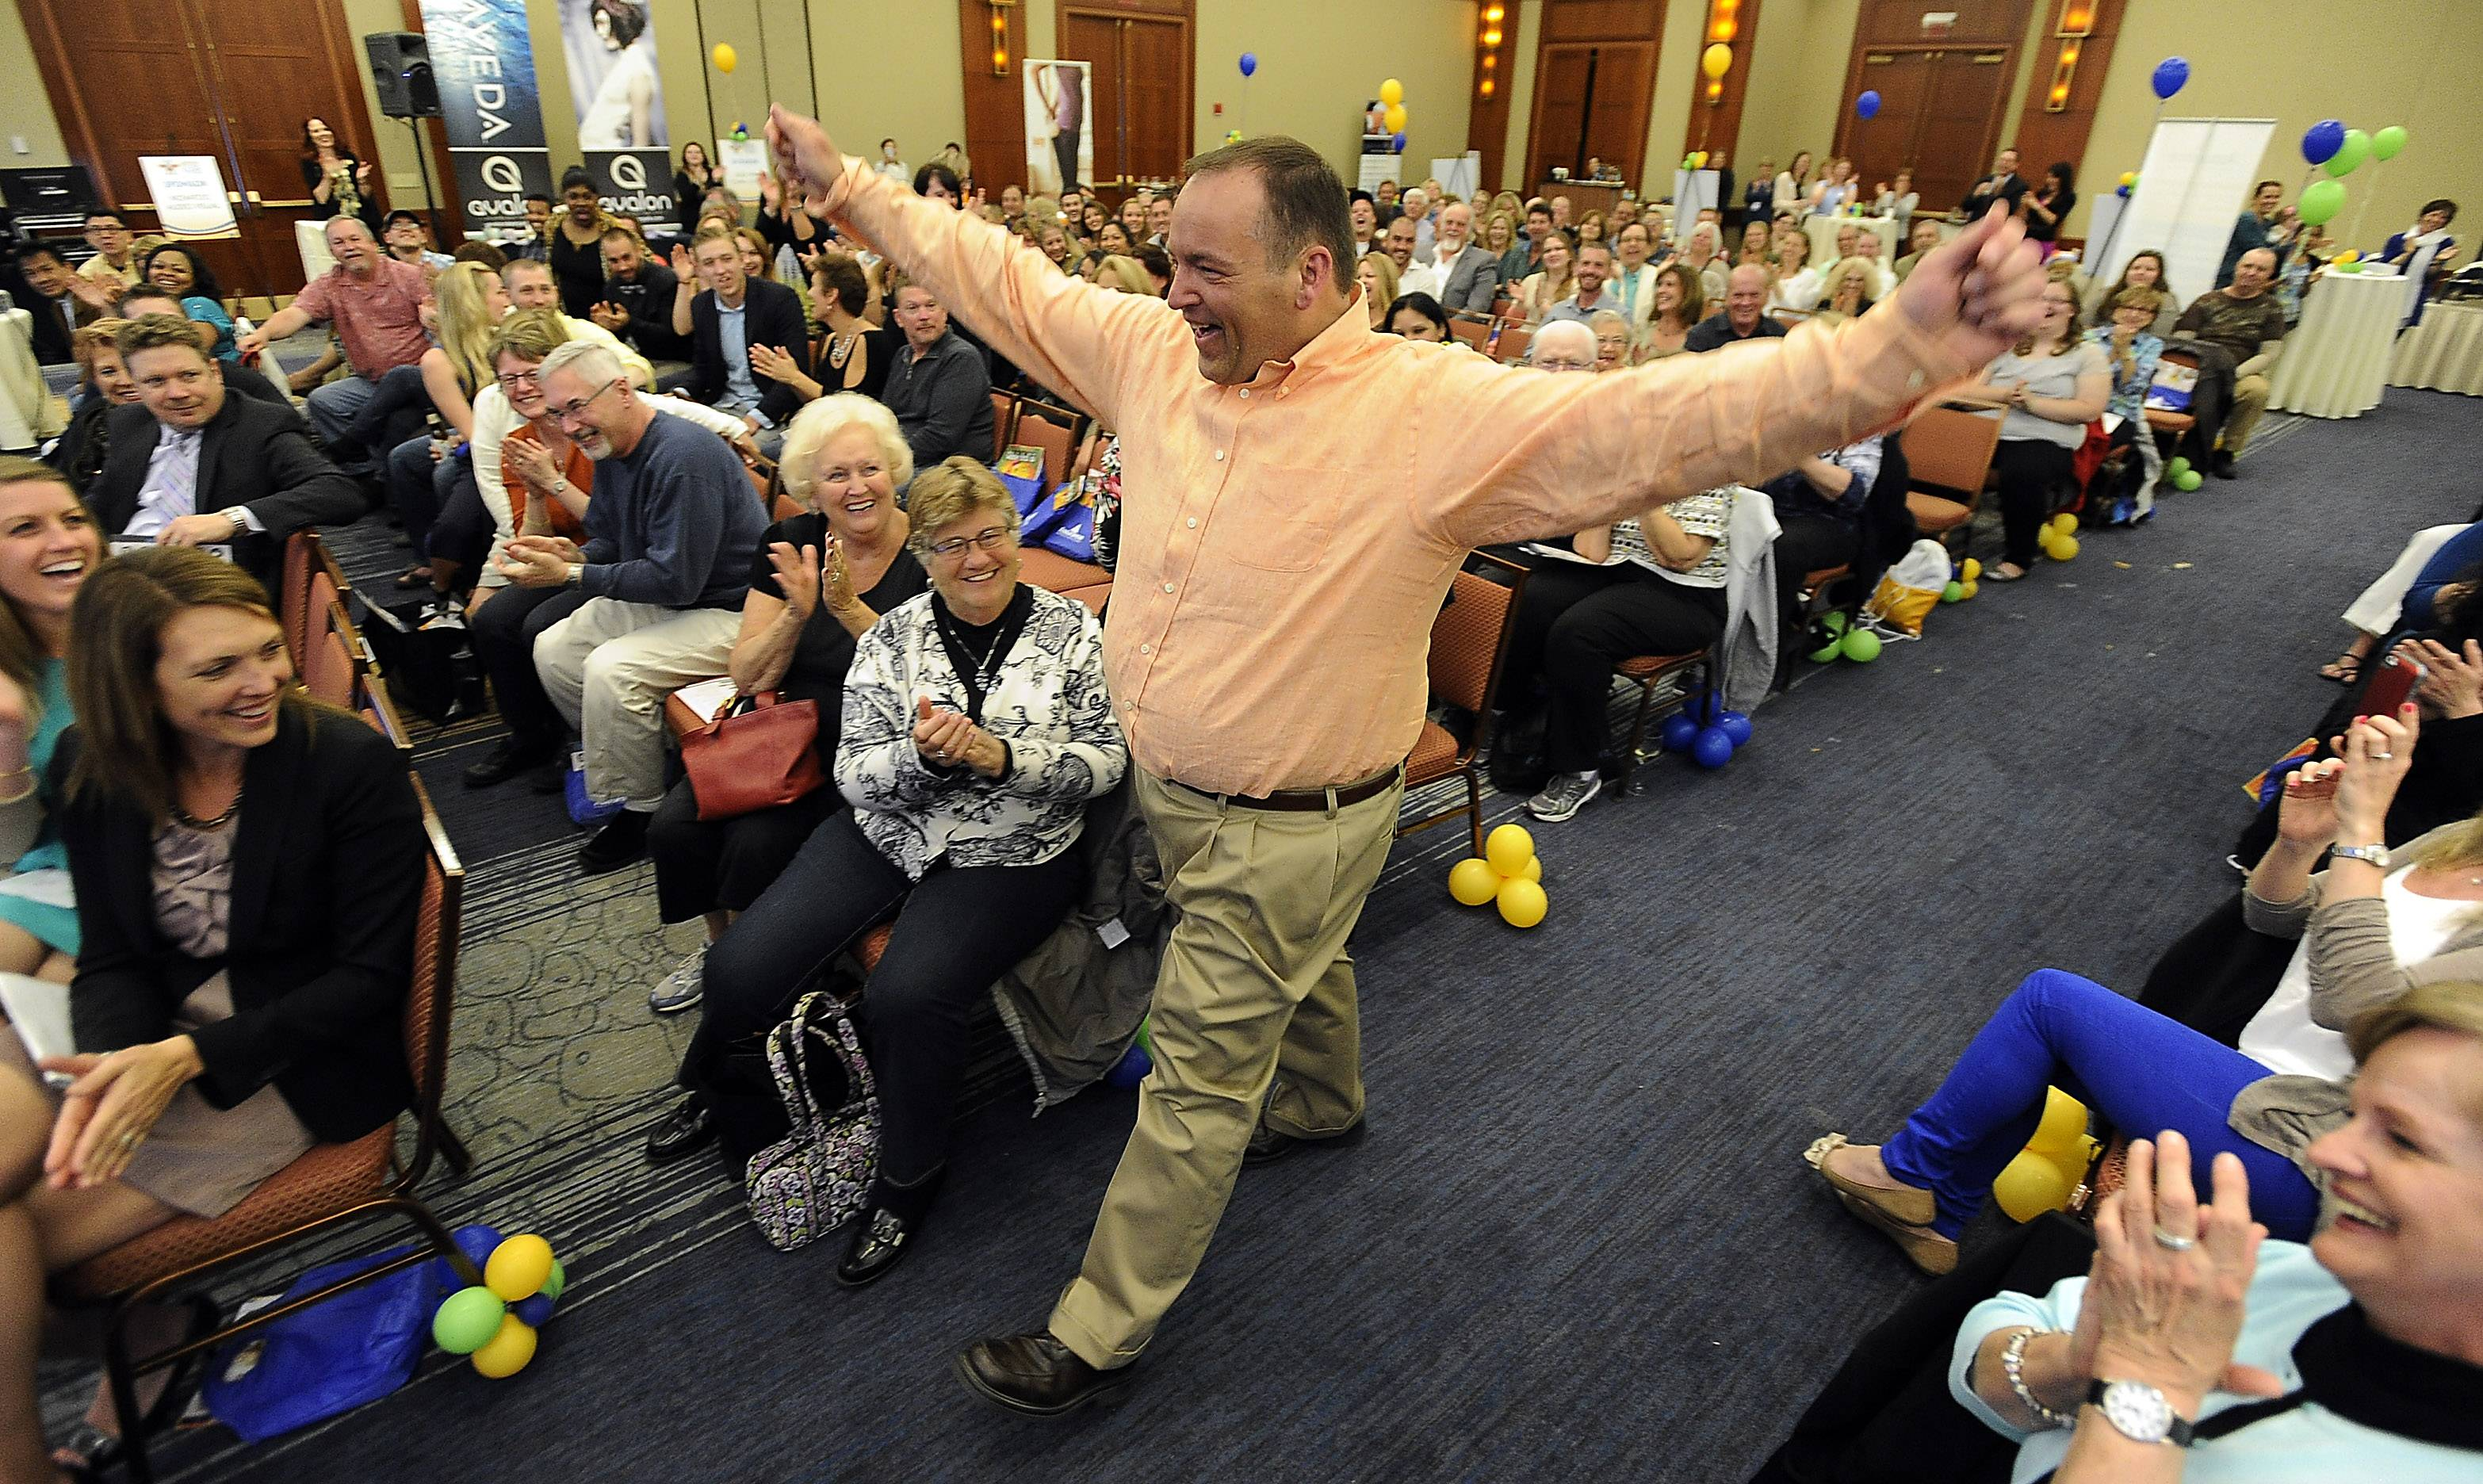 John Bohanek of South Elgin is full of energy as he is introduced to the sold-out crowd at the Daily Herald's 2014 Fittest Loser Challenge ceremony in Itasca Thursday. Bohanek won the challenge after losing 87 pounds in 12 weeks.